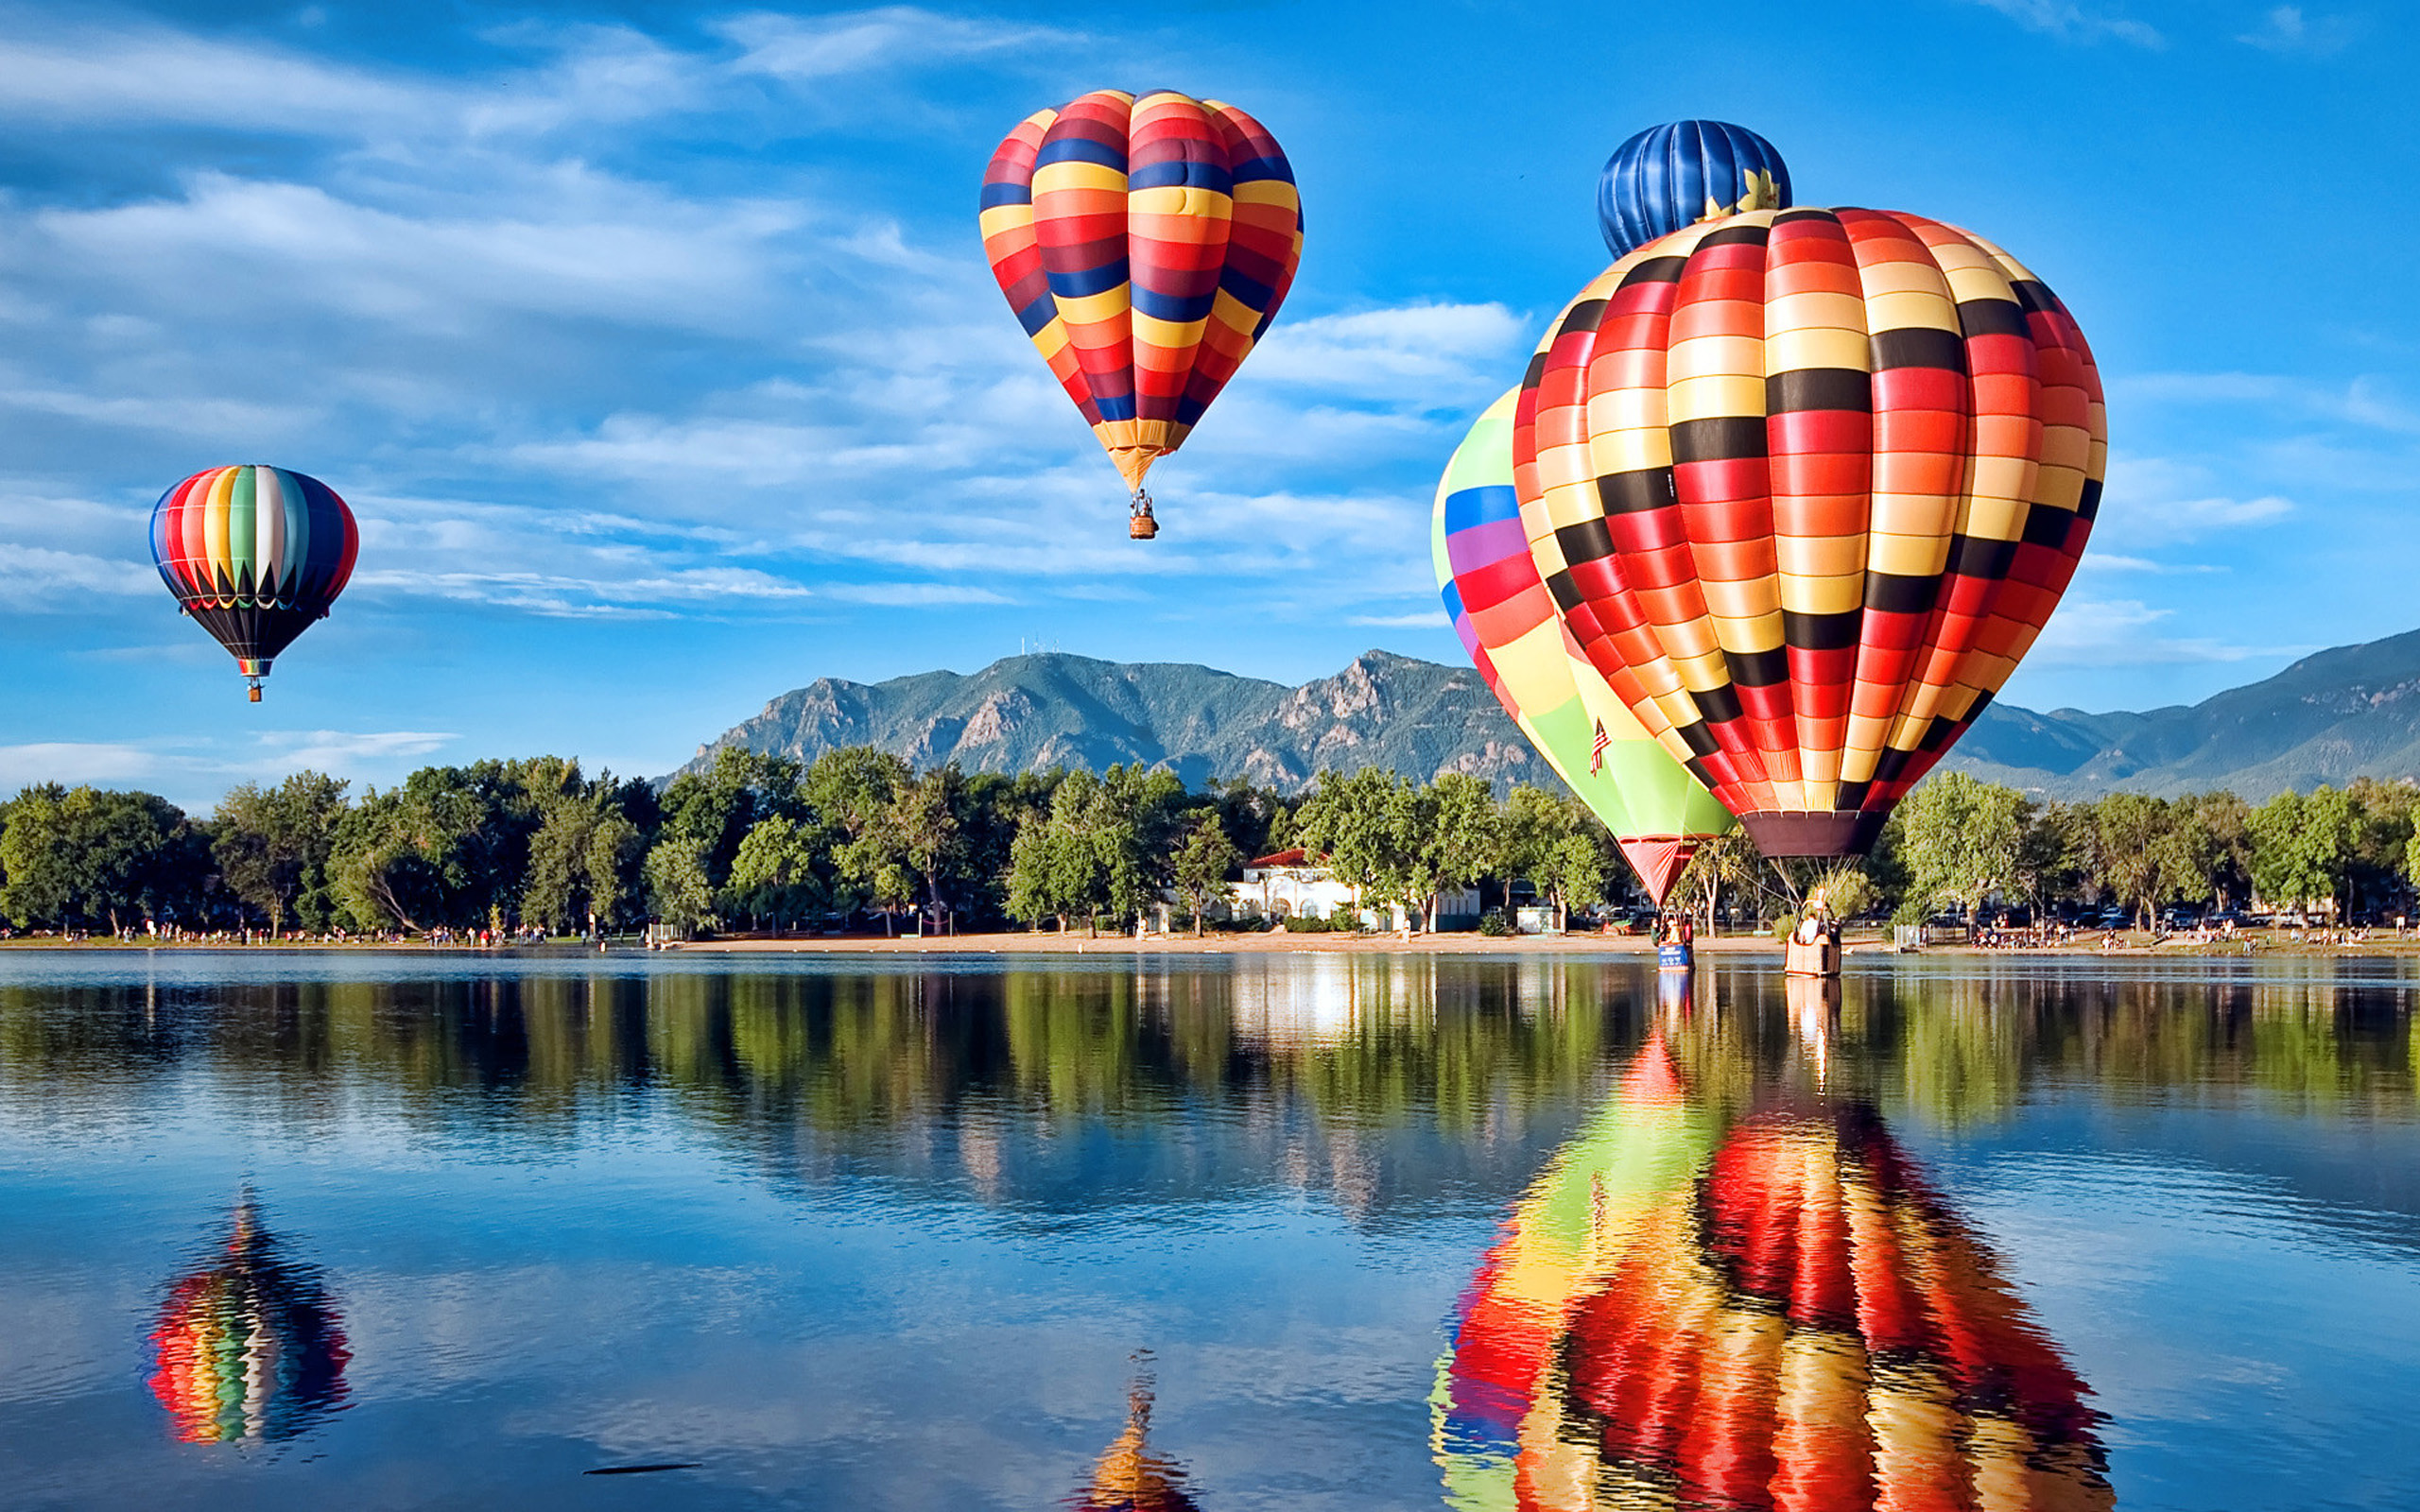 Free Download Hot Air Balloon Wallpaper Hd 48994 50642 Hd